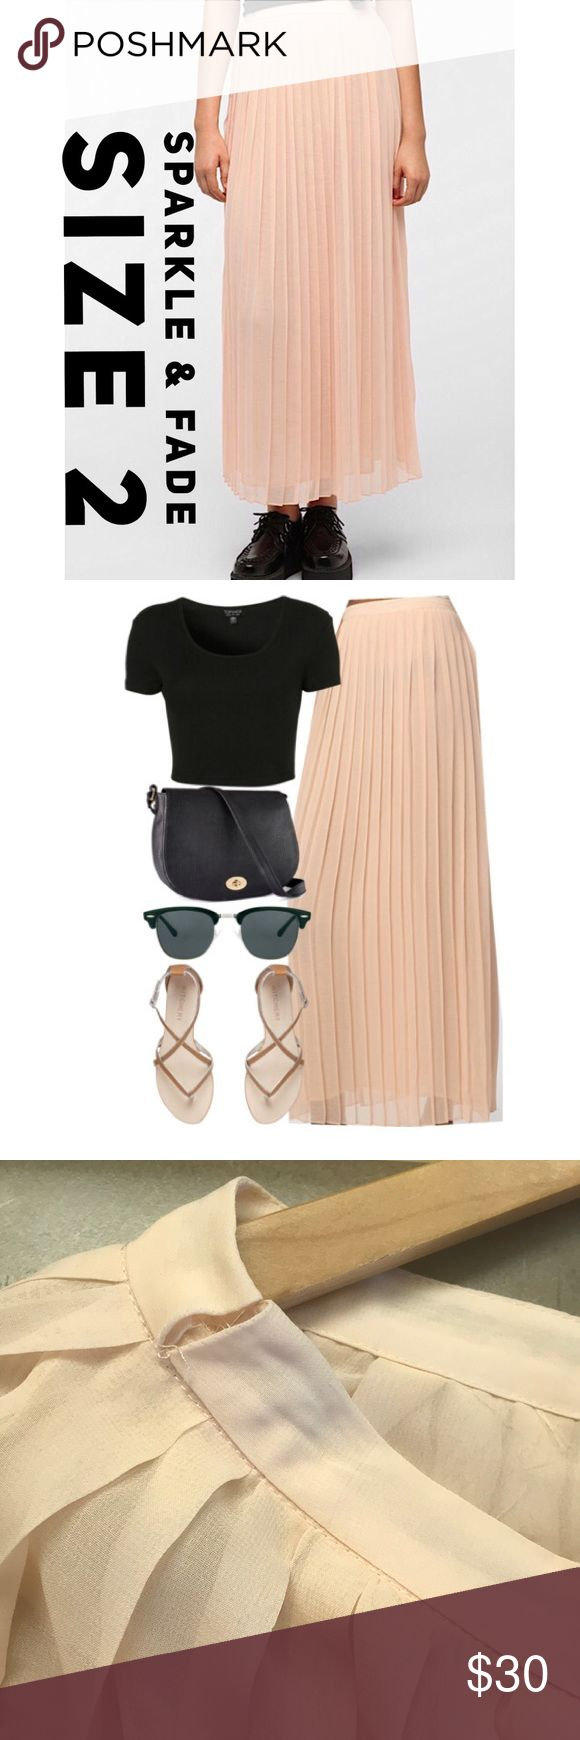 Sparkle & Fade Pleated Chiffon Maxi Skirt 🍕Smoke & pet free home 🍕 Needs small stitching🧐 Has a minor unnoticeable stain  (Pic provided) Urban Outfitters Skirts Maxi